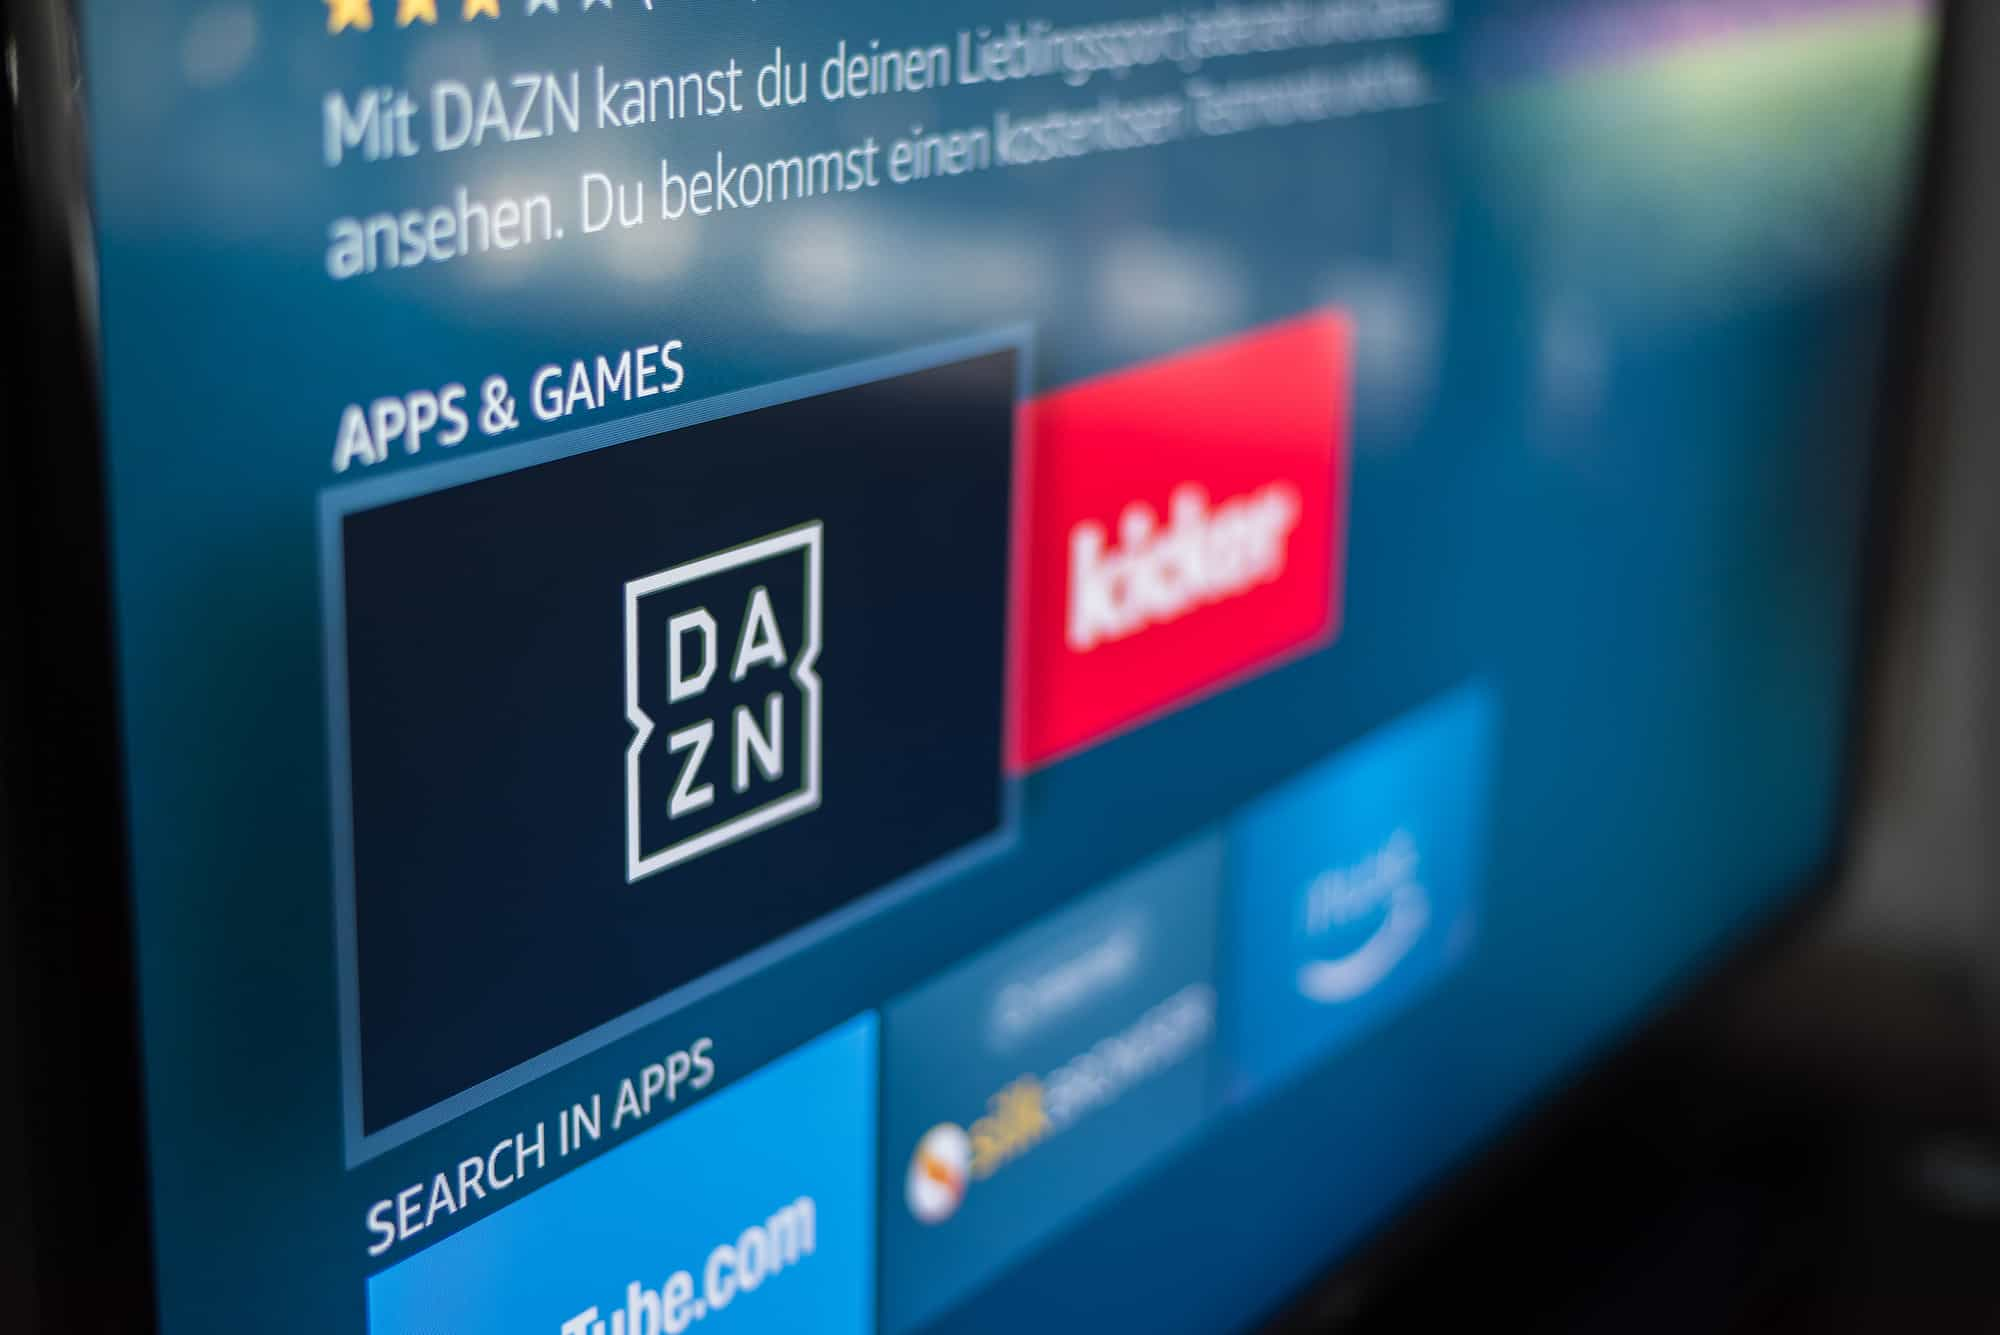 How to Watch DAZN on the Amazon Fire TV Stick in Any Country